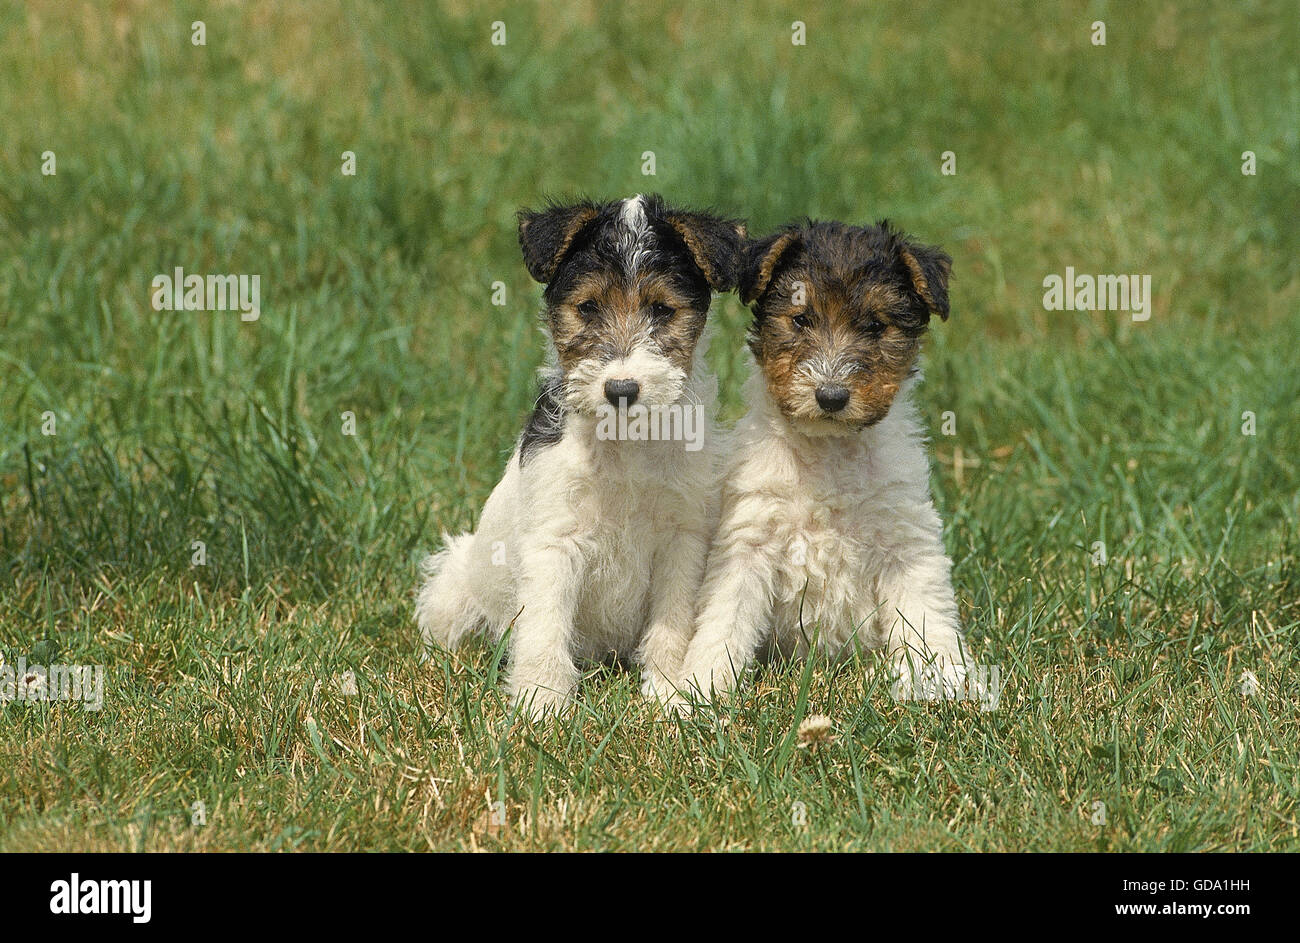 Wire Haired Fox Terrier Dog On Stockfotos & Wire Haired Fox Terrier ...